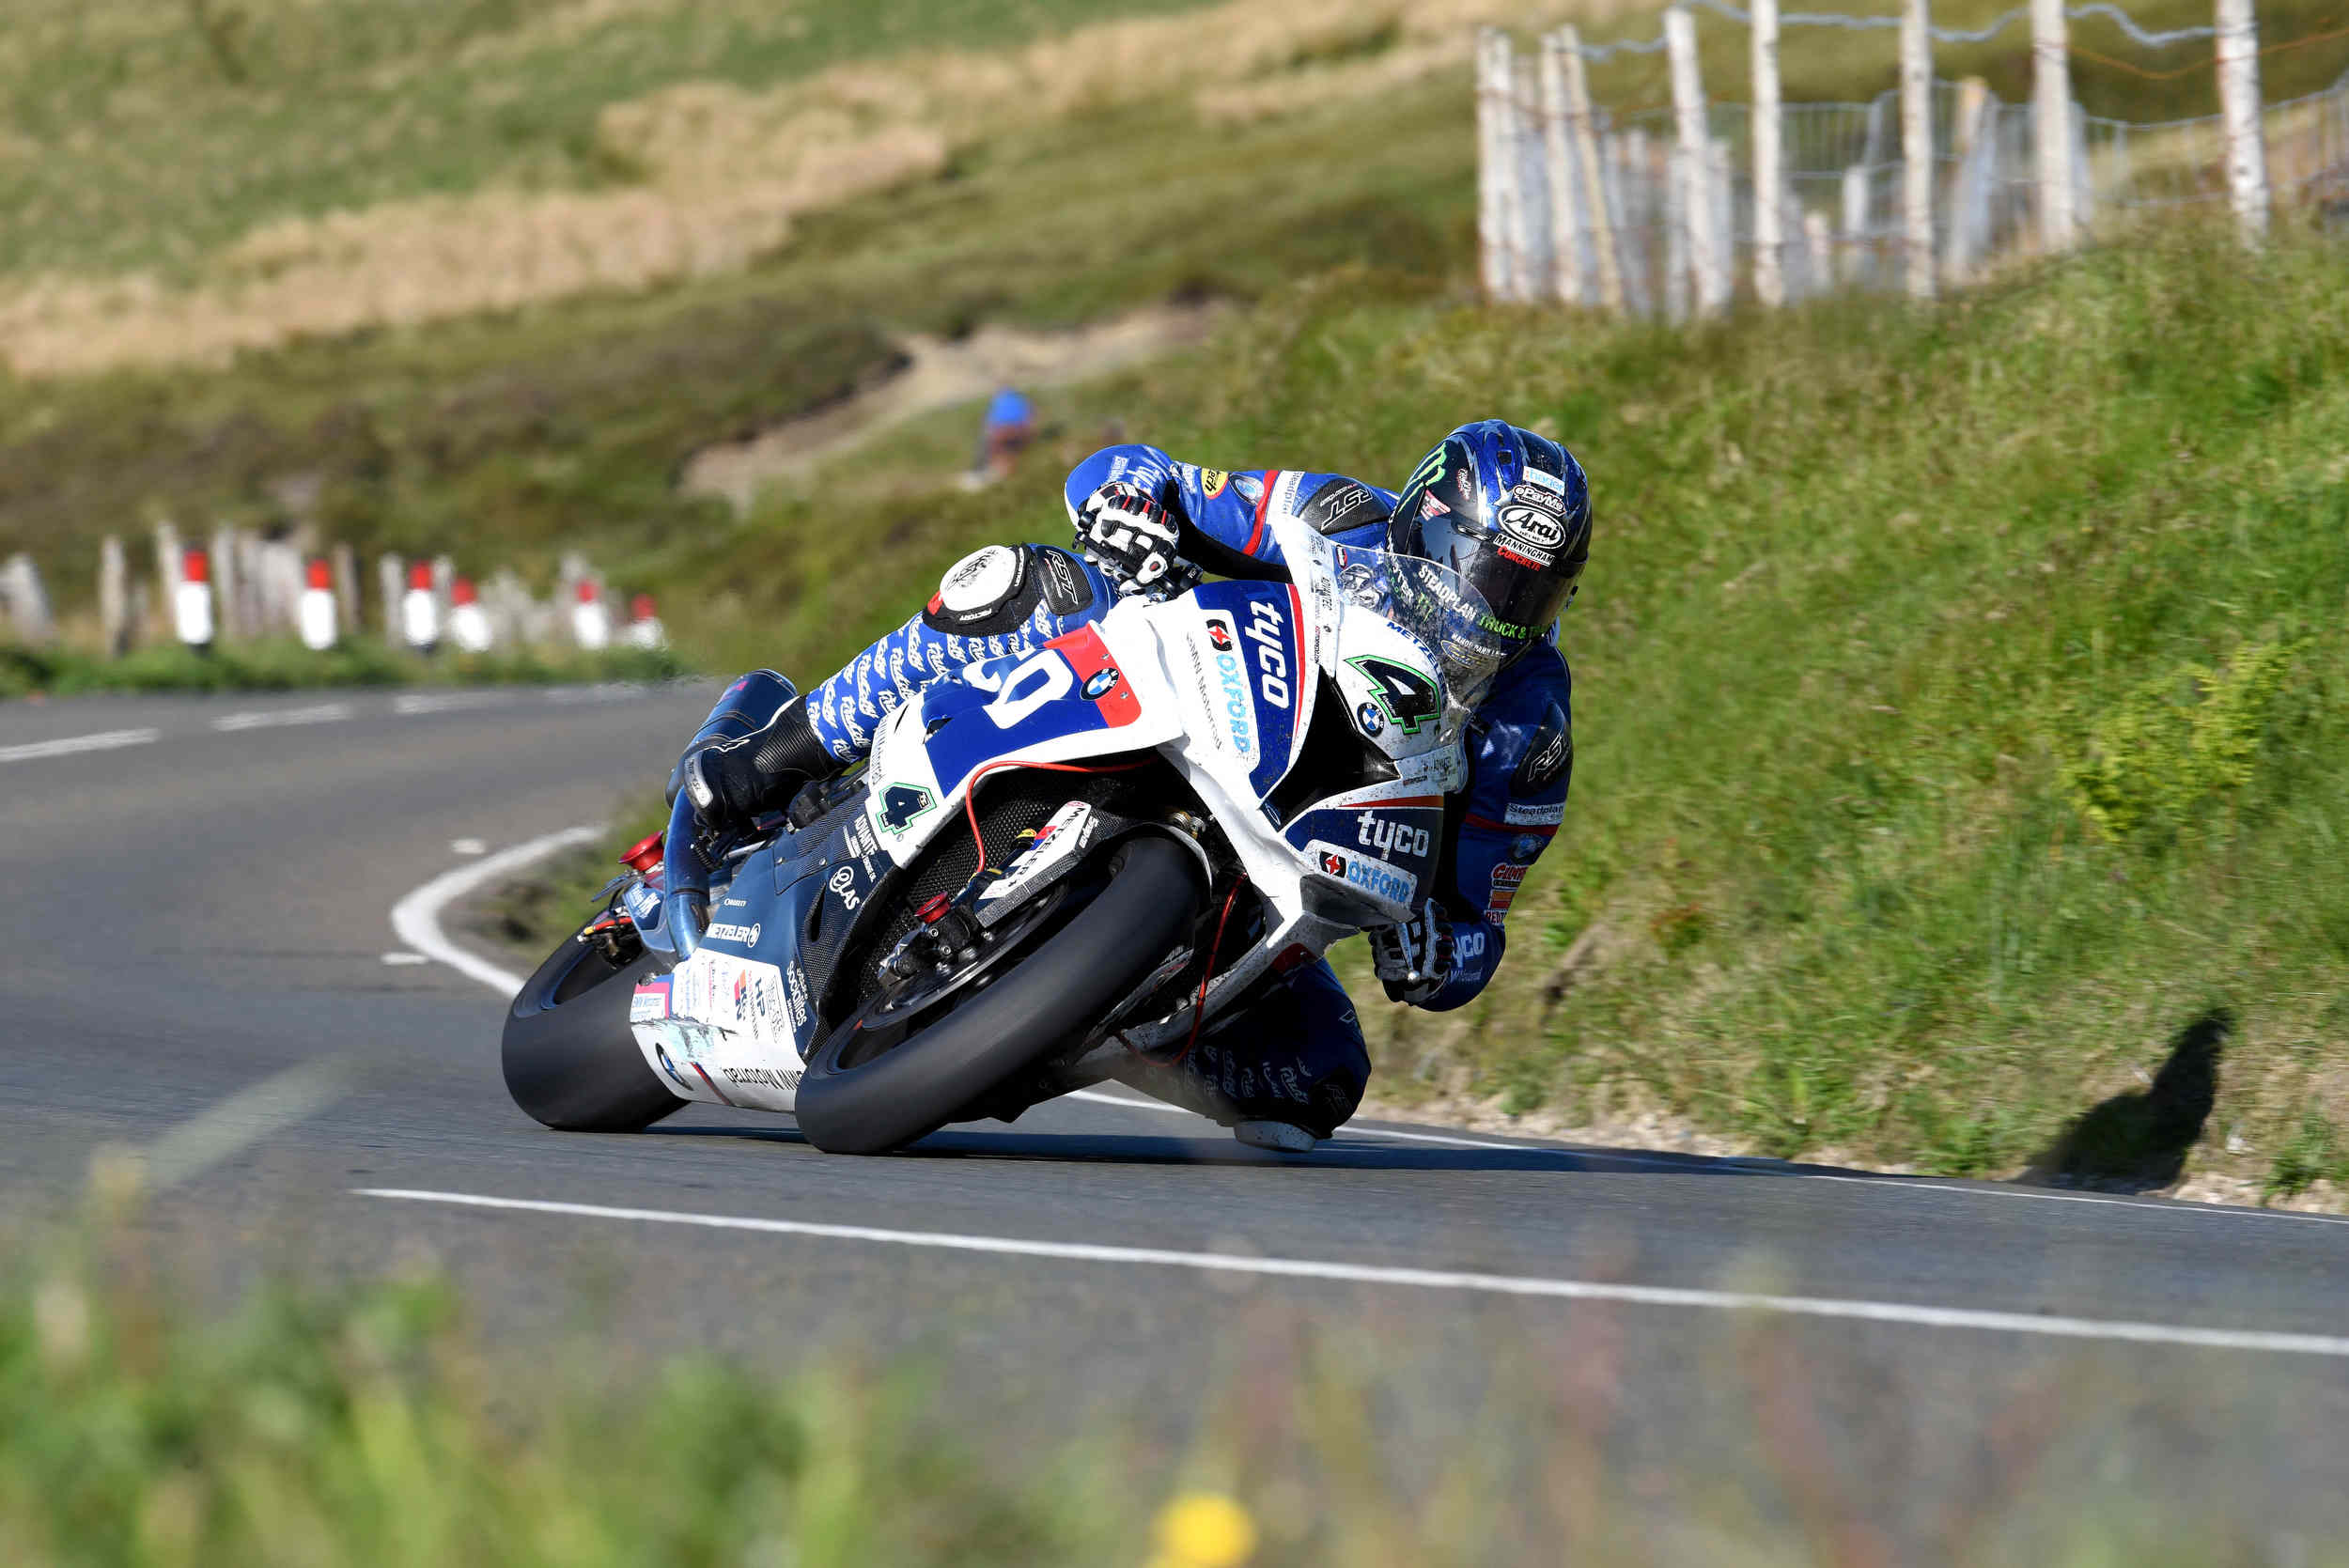 TT 2016 qualifying - Ian Hutchinson